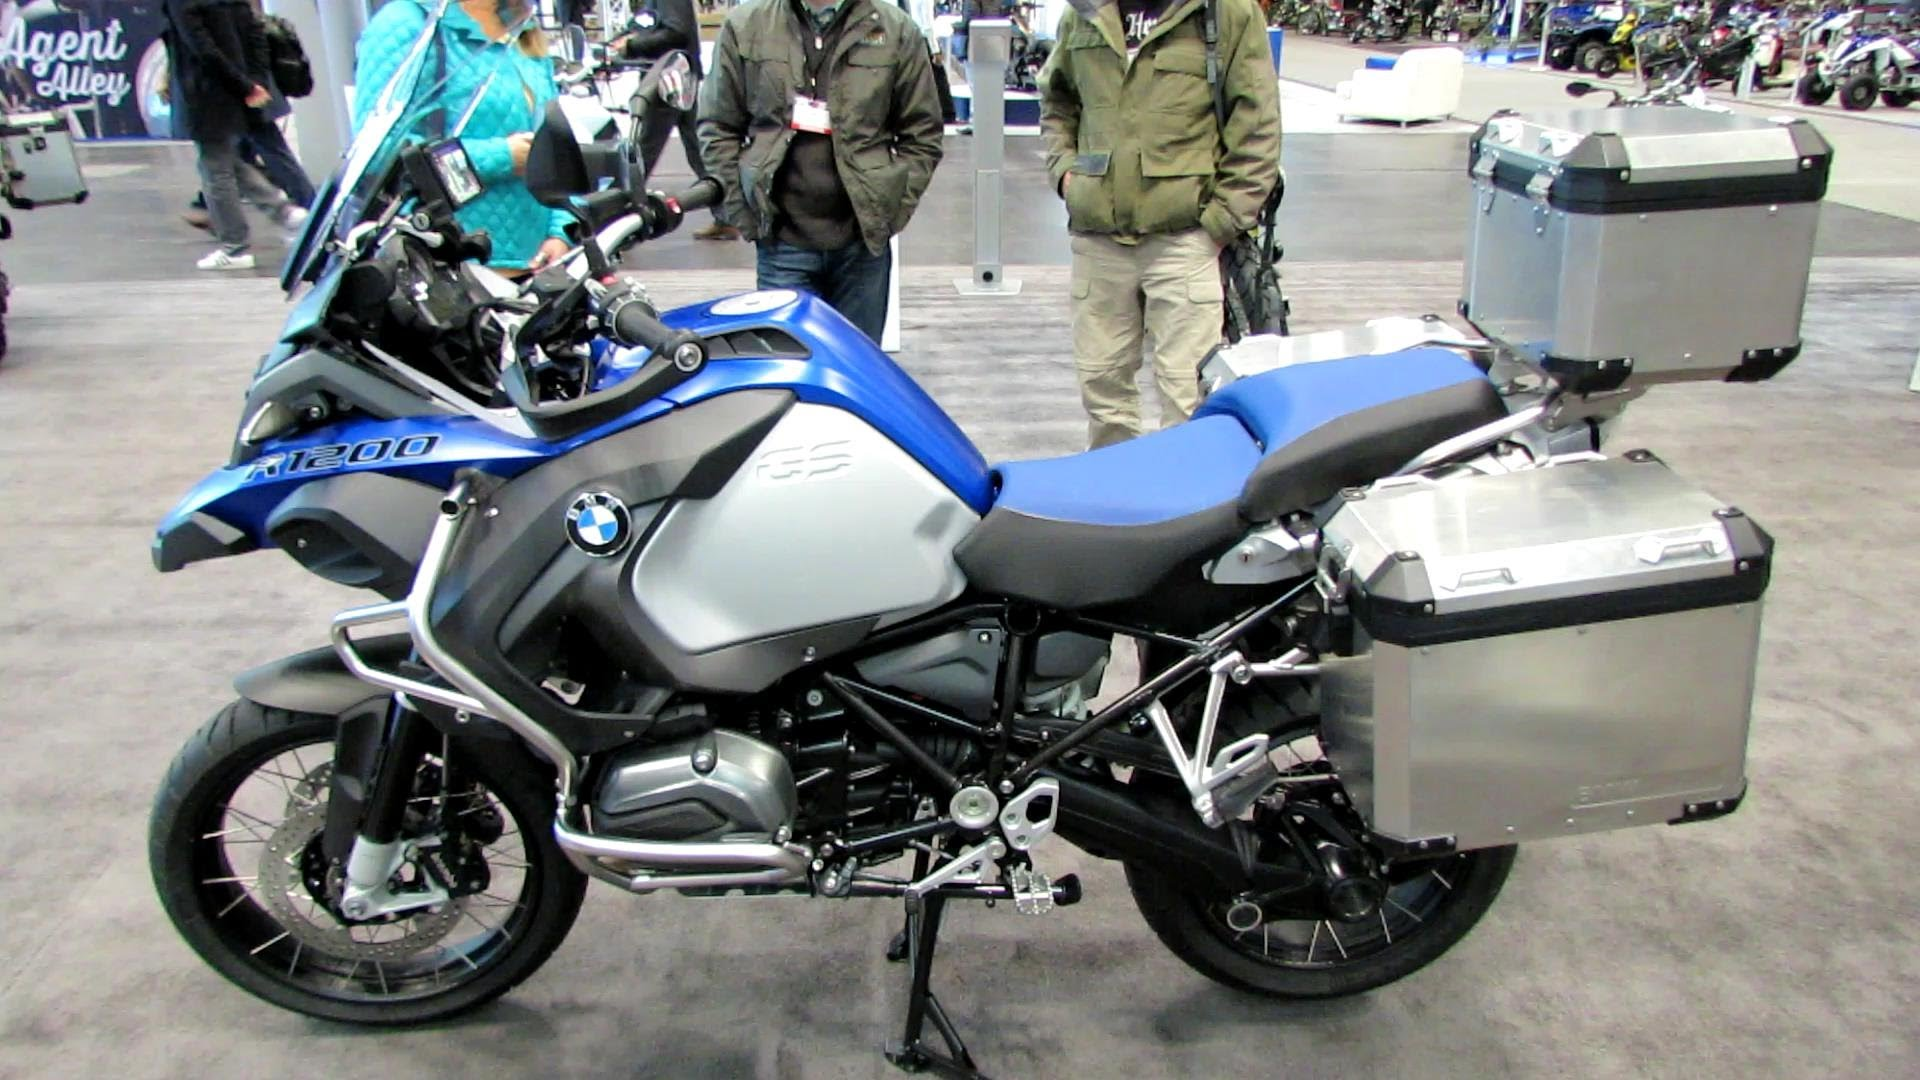 BMW R1200GS images #9173